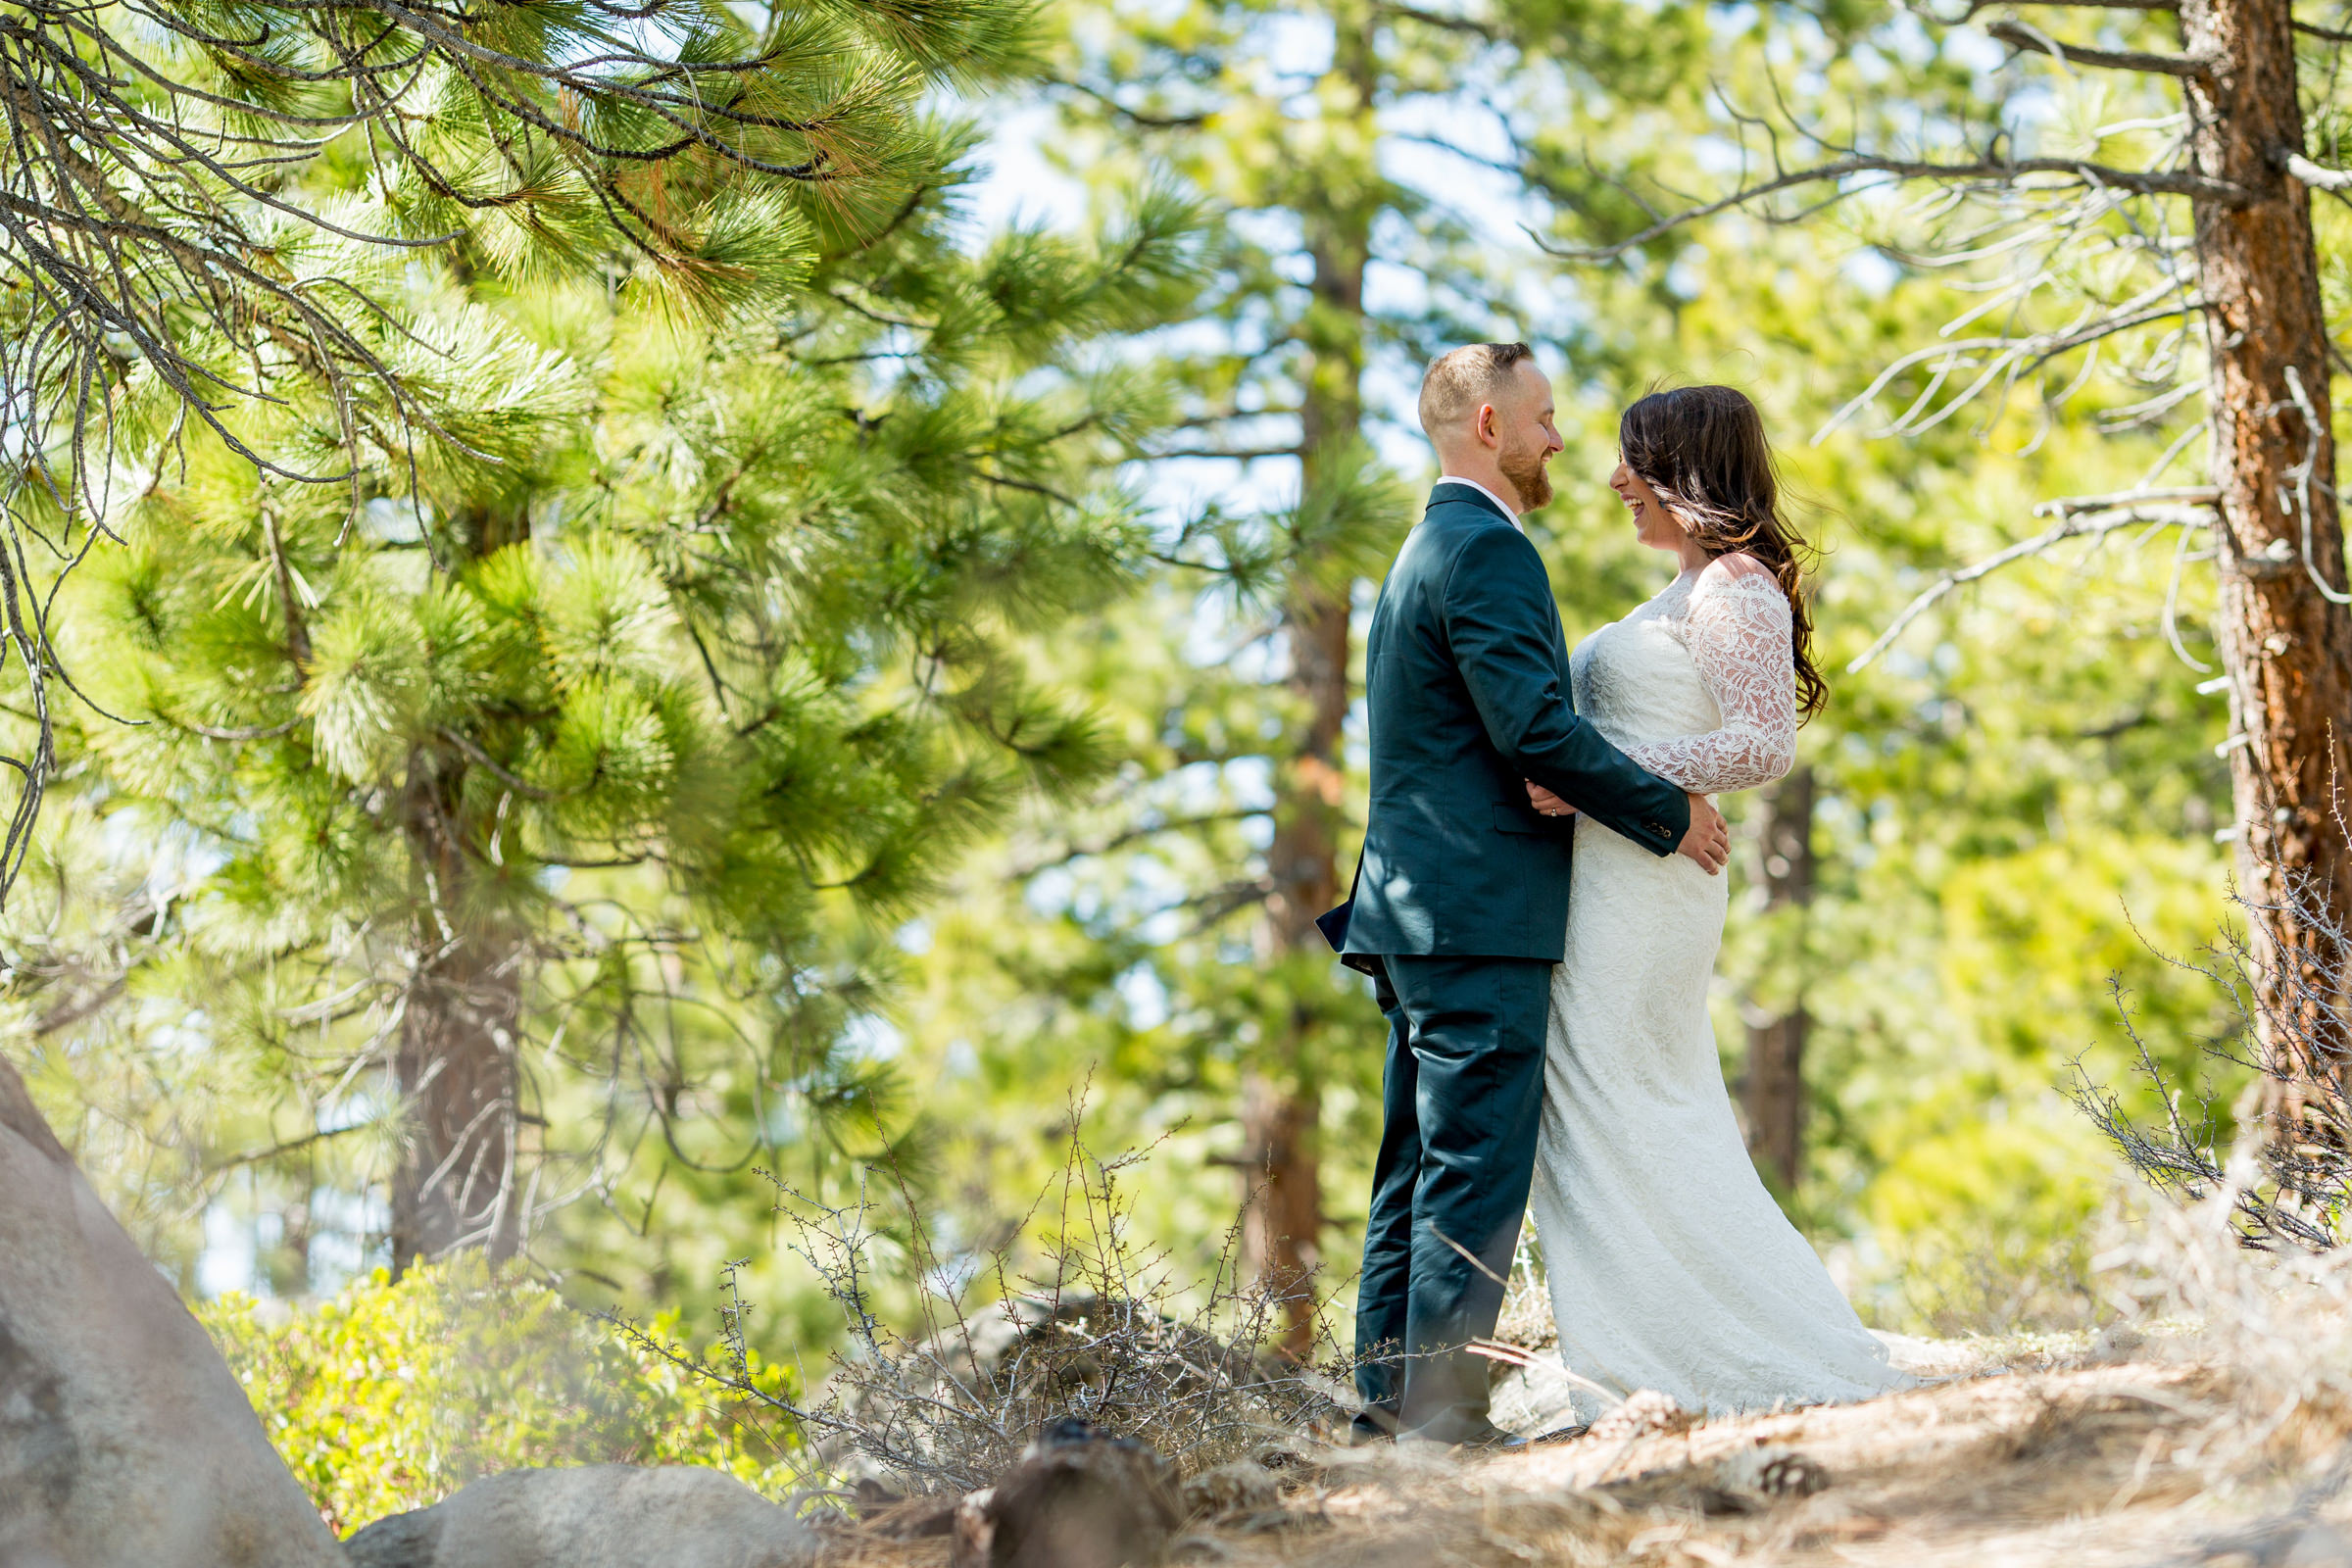 lake-tahoe-wedding-photographer-photography-best-top-north-city-kevin-sawyer-reno-truckee-bestof-incline-village-ceremony-charthouse-chart-house-south-lake-tahoe-downtown-love-laughter-bride-groom-dress-suit